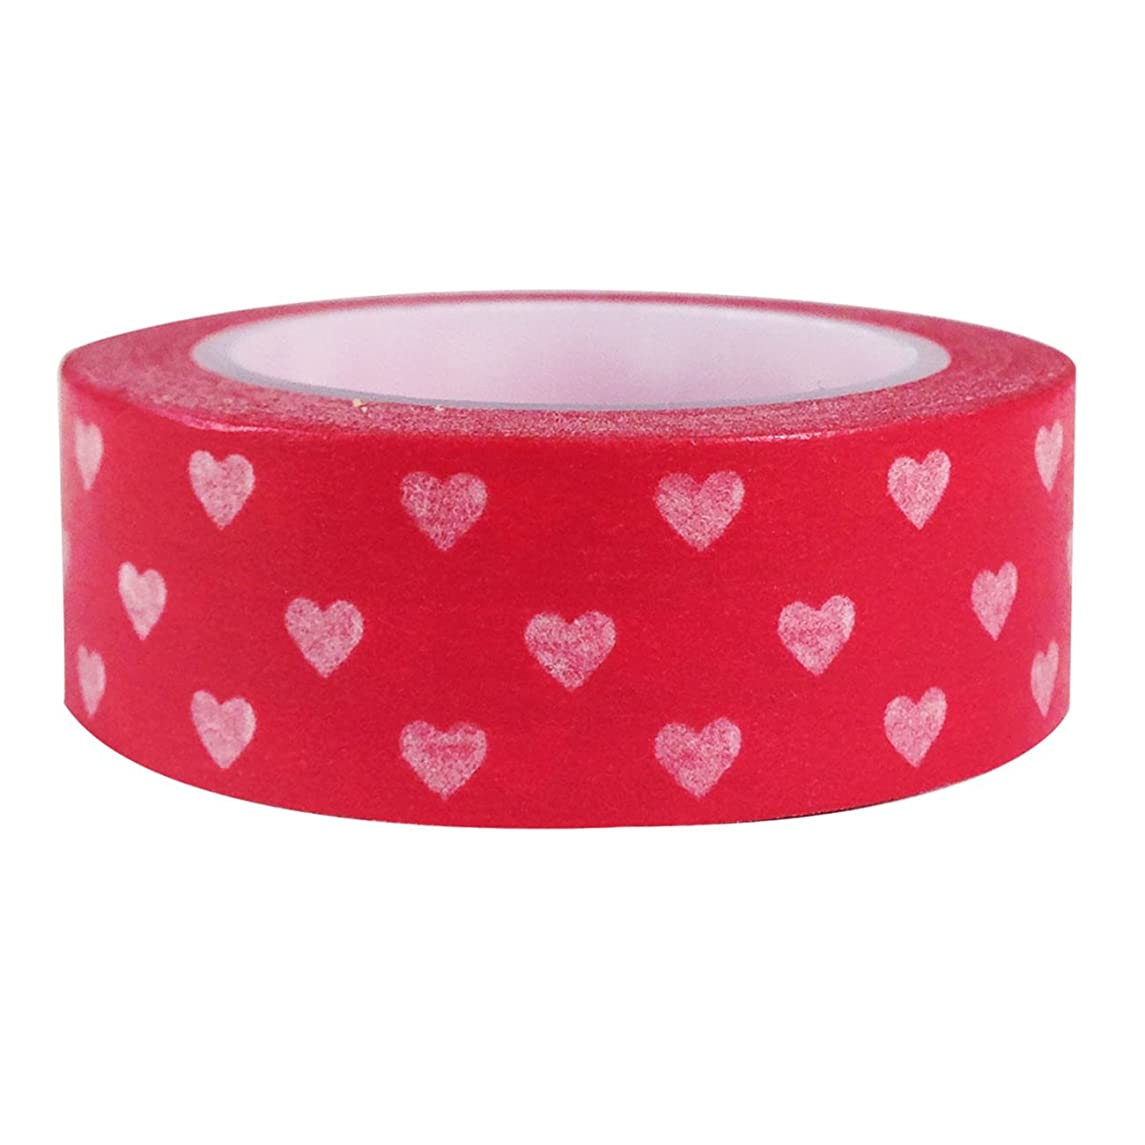 Wrapables Hearts and Sweets Washi Masking Tape, White Hearts